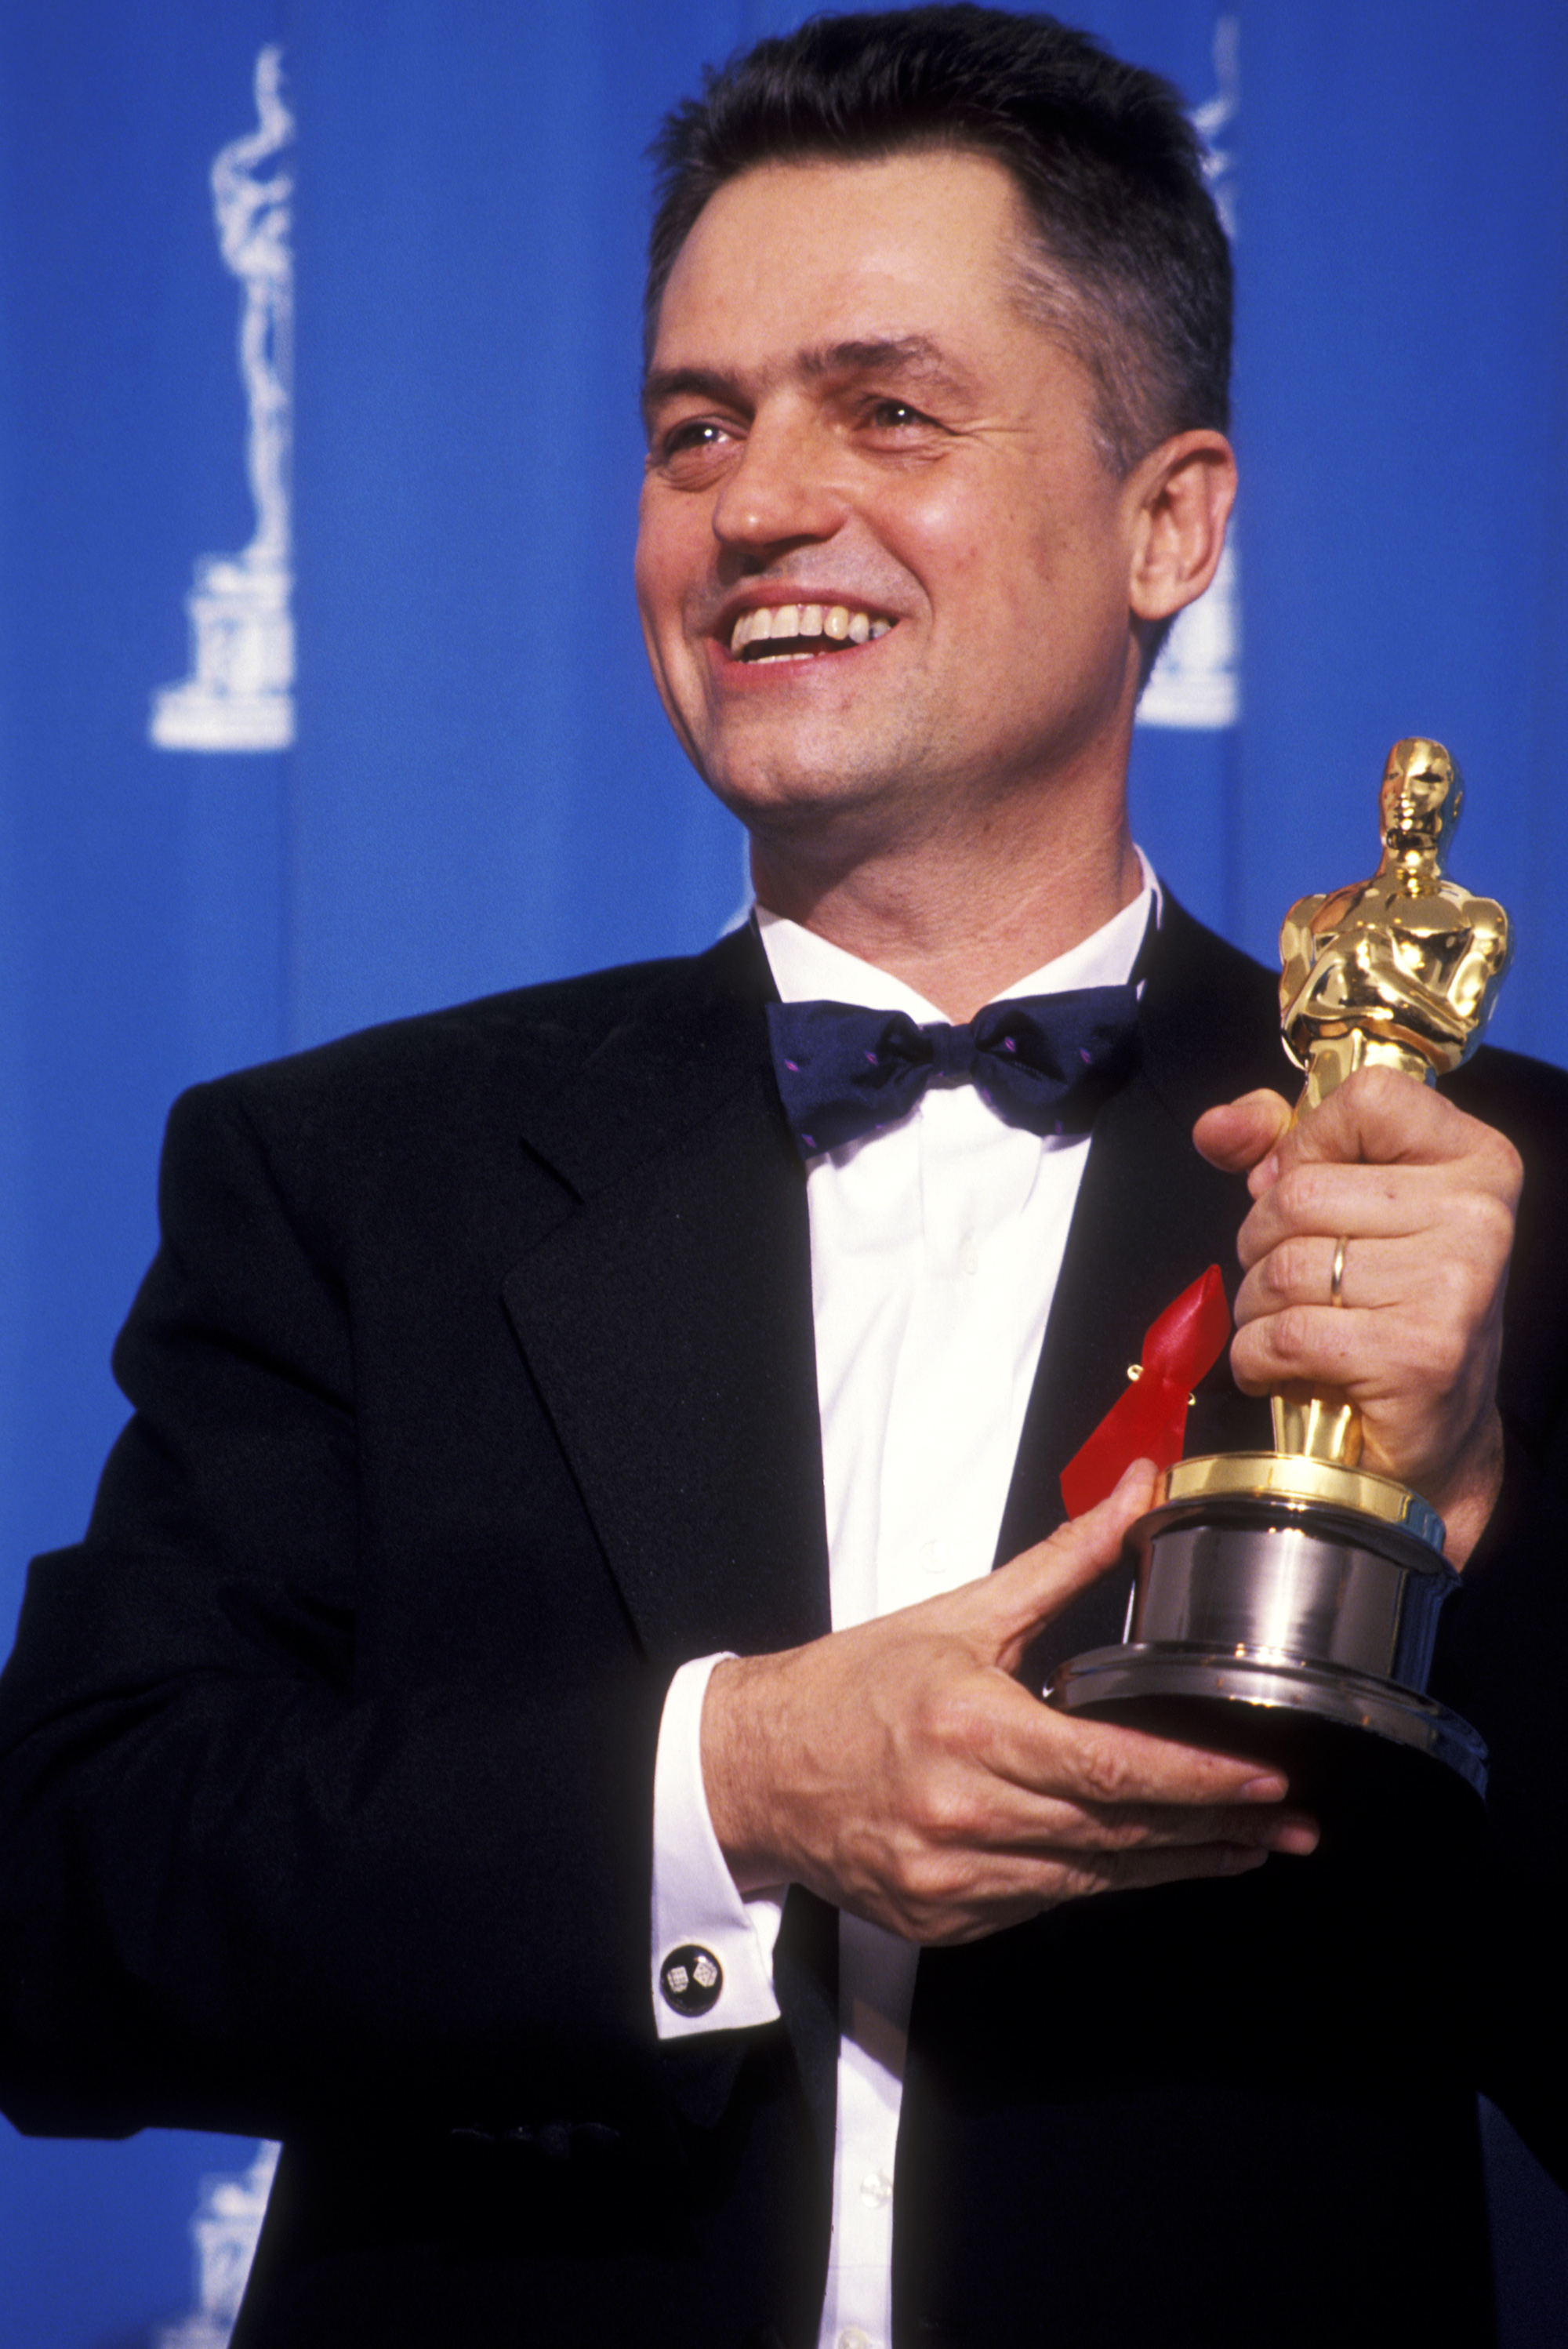 Jonathan Demme attends the 64th Annual Academy Awards in Los Angeles, on March 30, 1992.